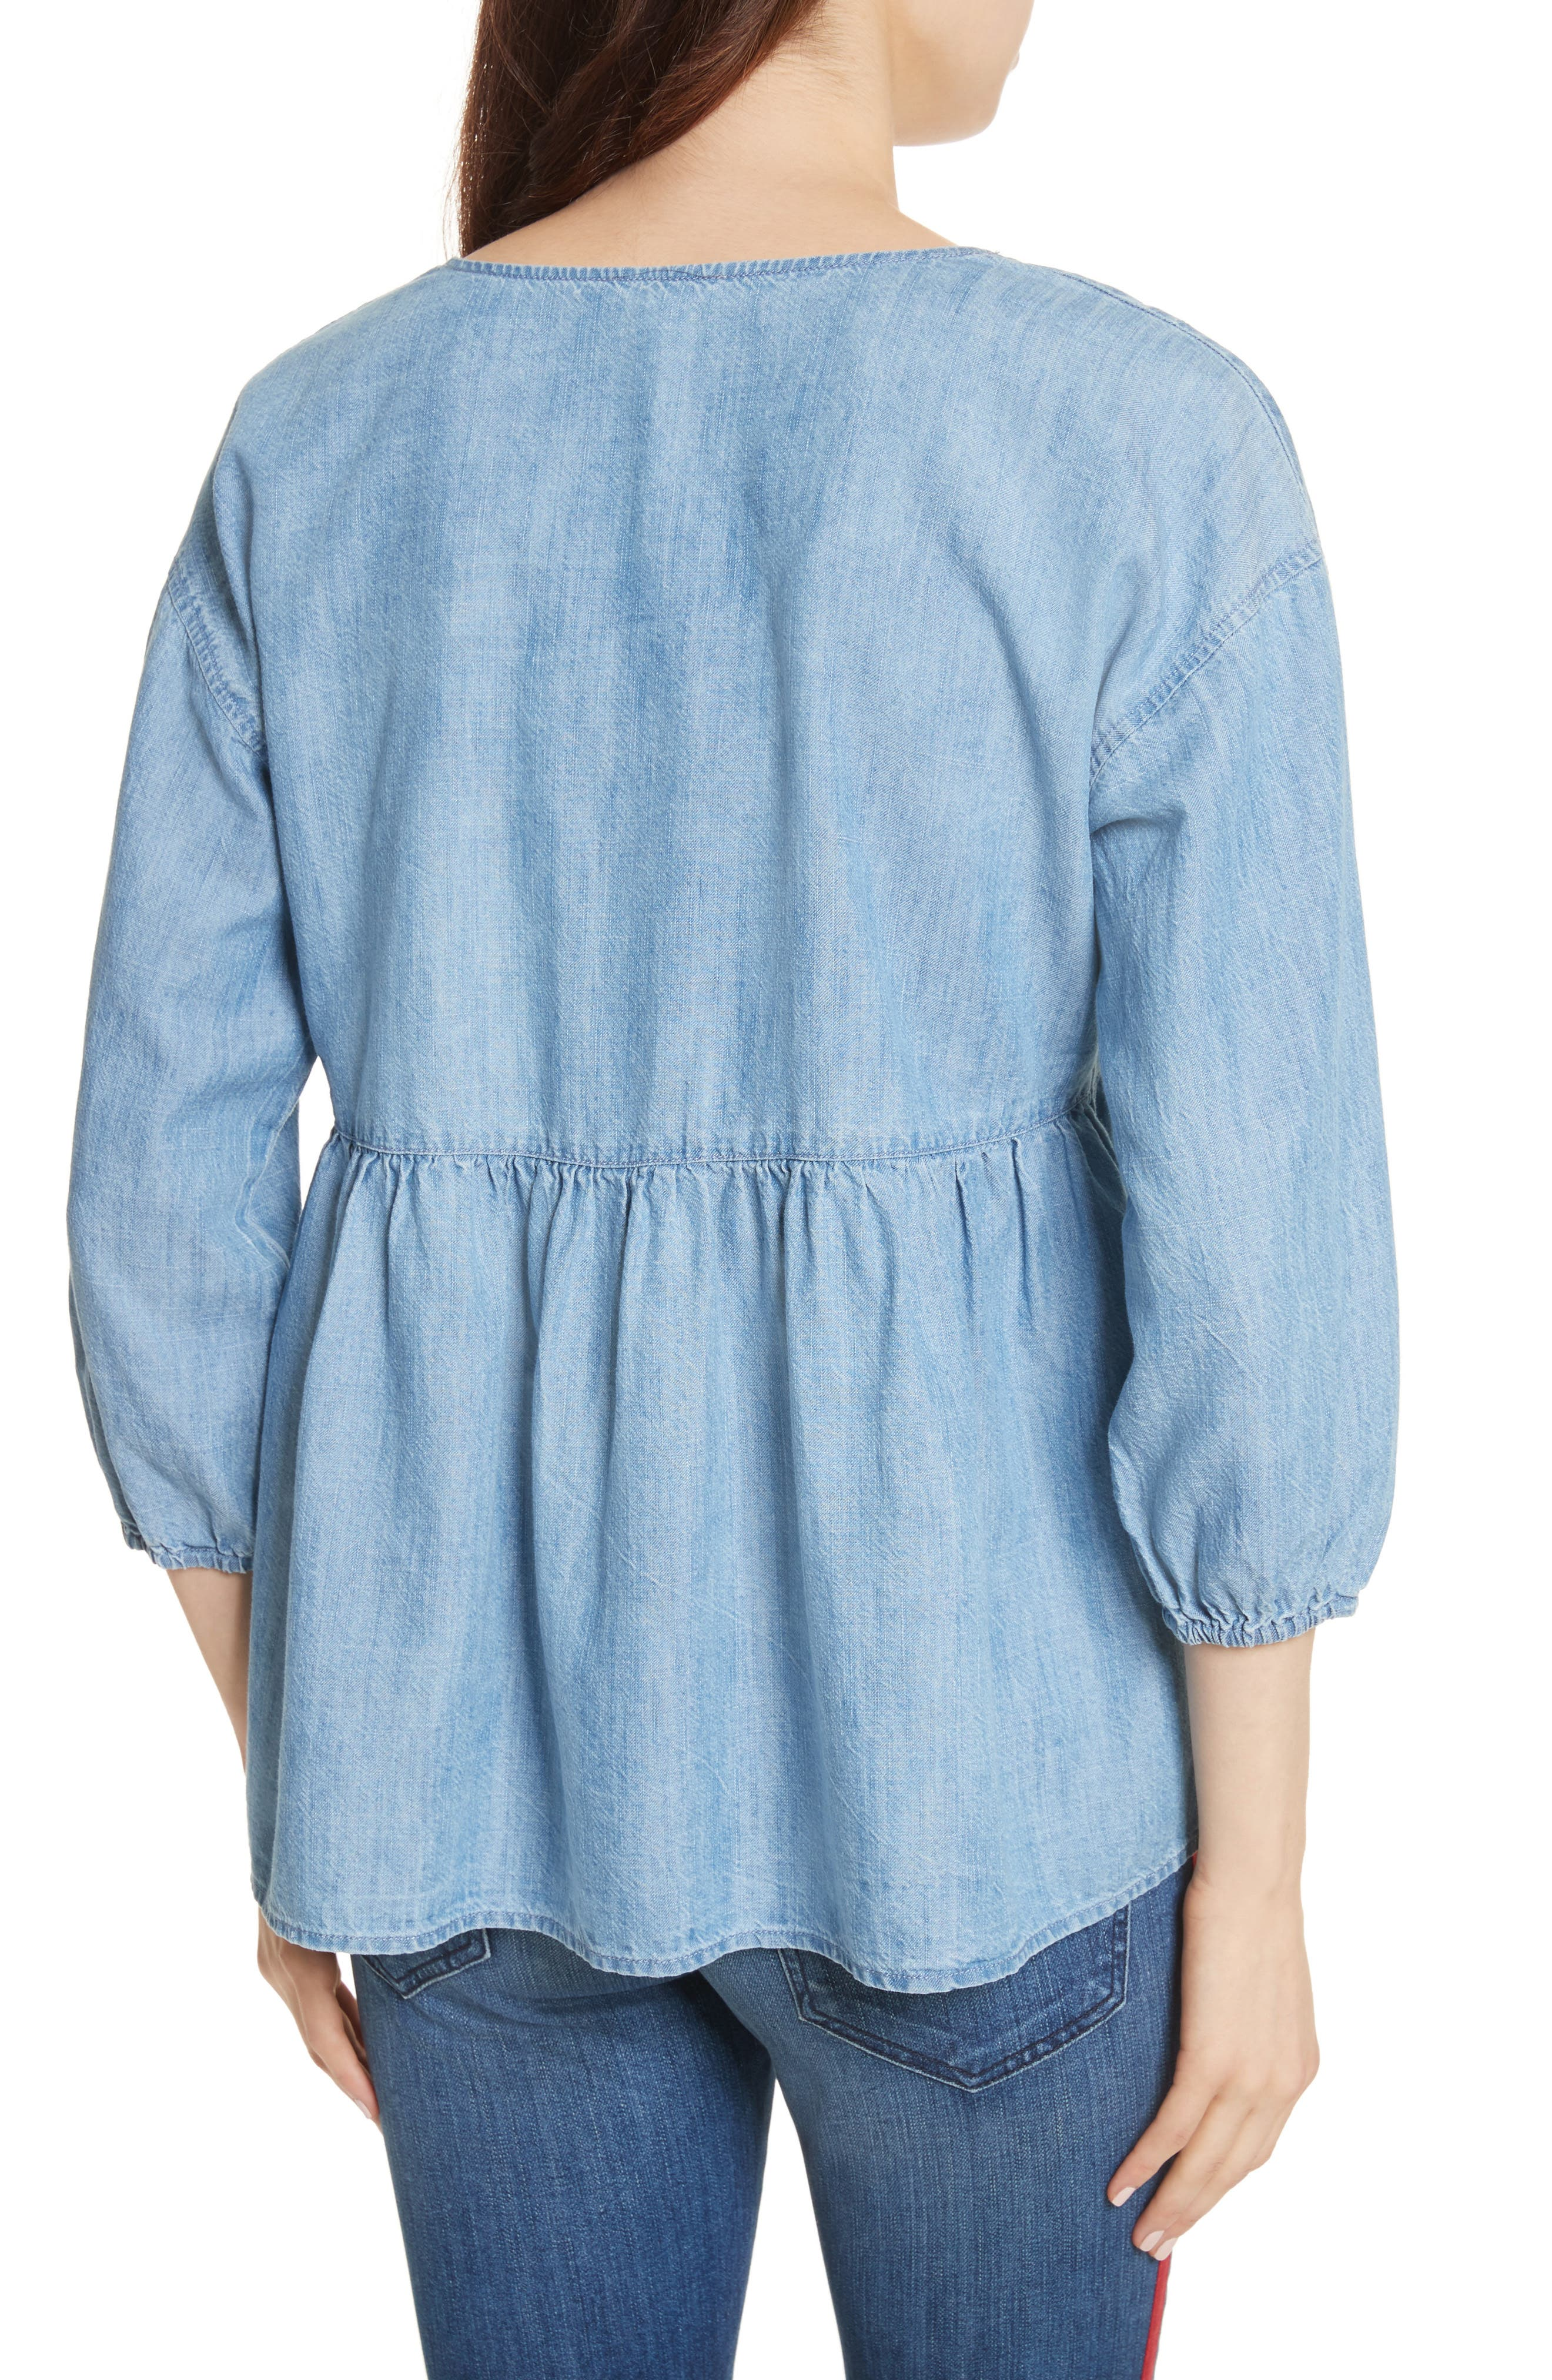 Bealette Lace-Up Chambray Top,                             Alternate thumbnail 2, color,                             481